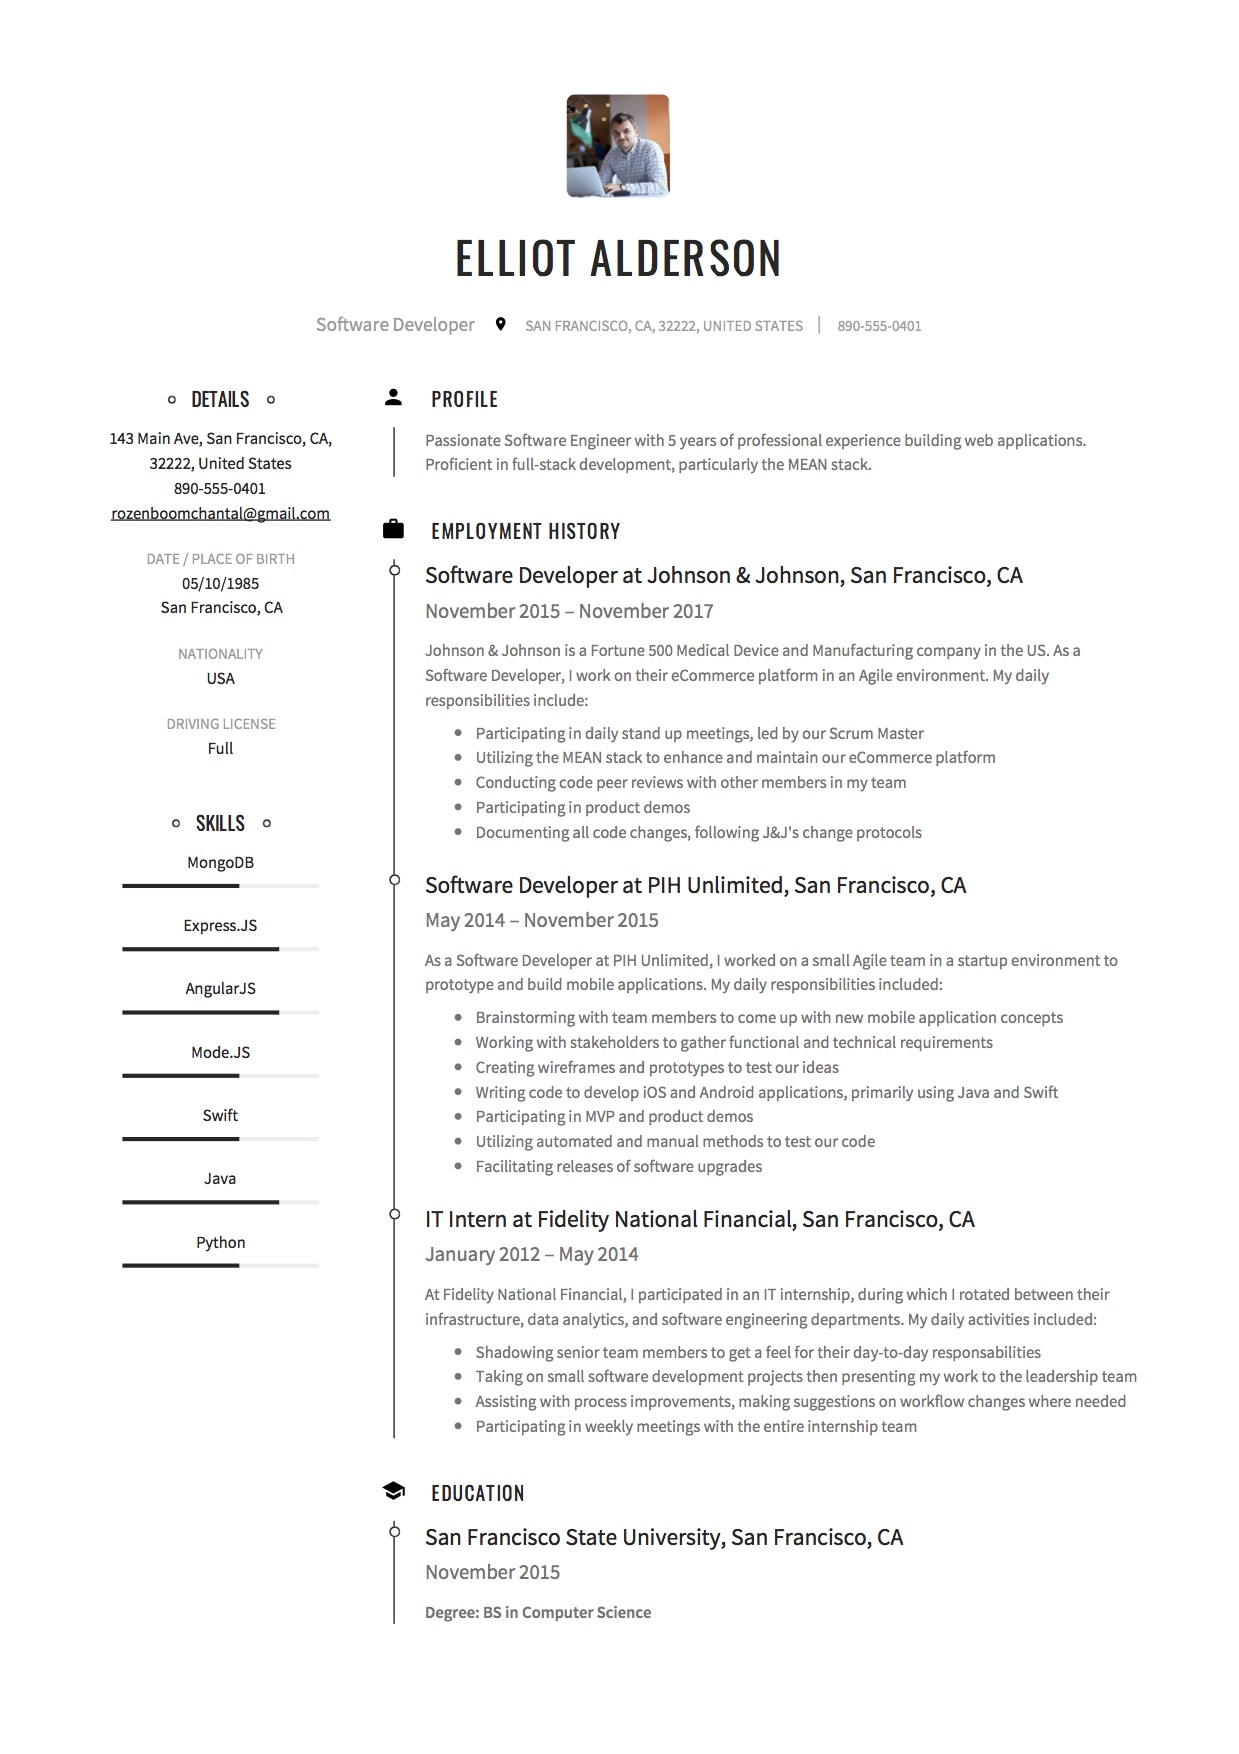 Software Professional Resume Samples Guide Software Developer Resume 12 Samples Word Pdf 2019